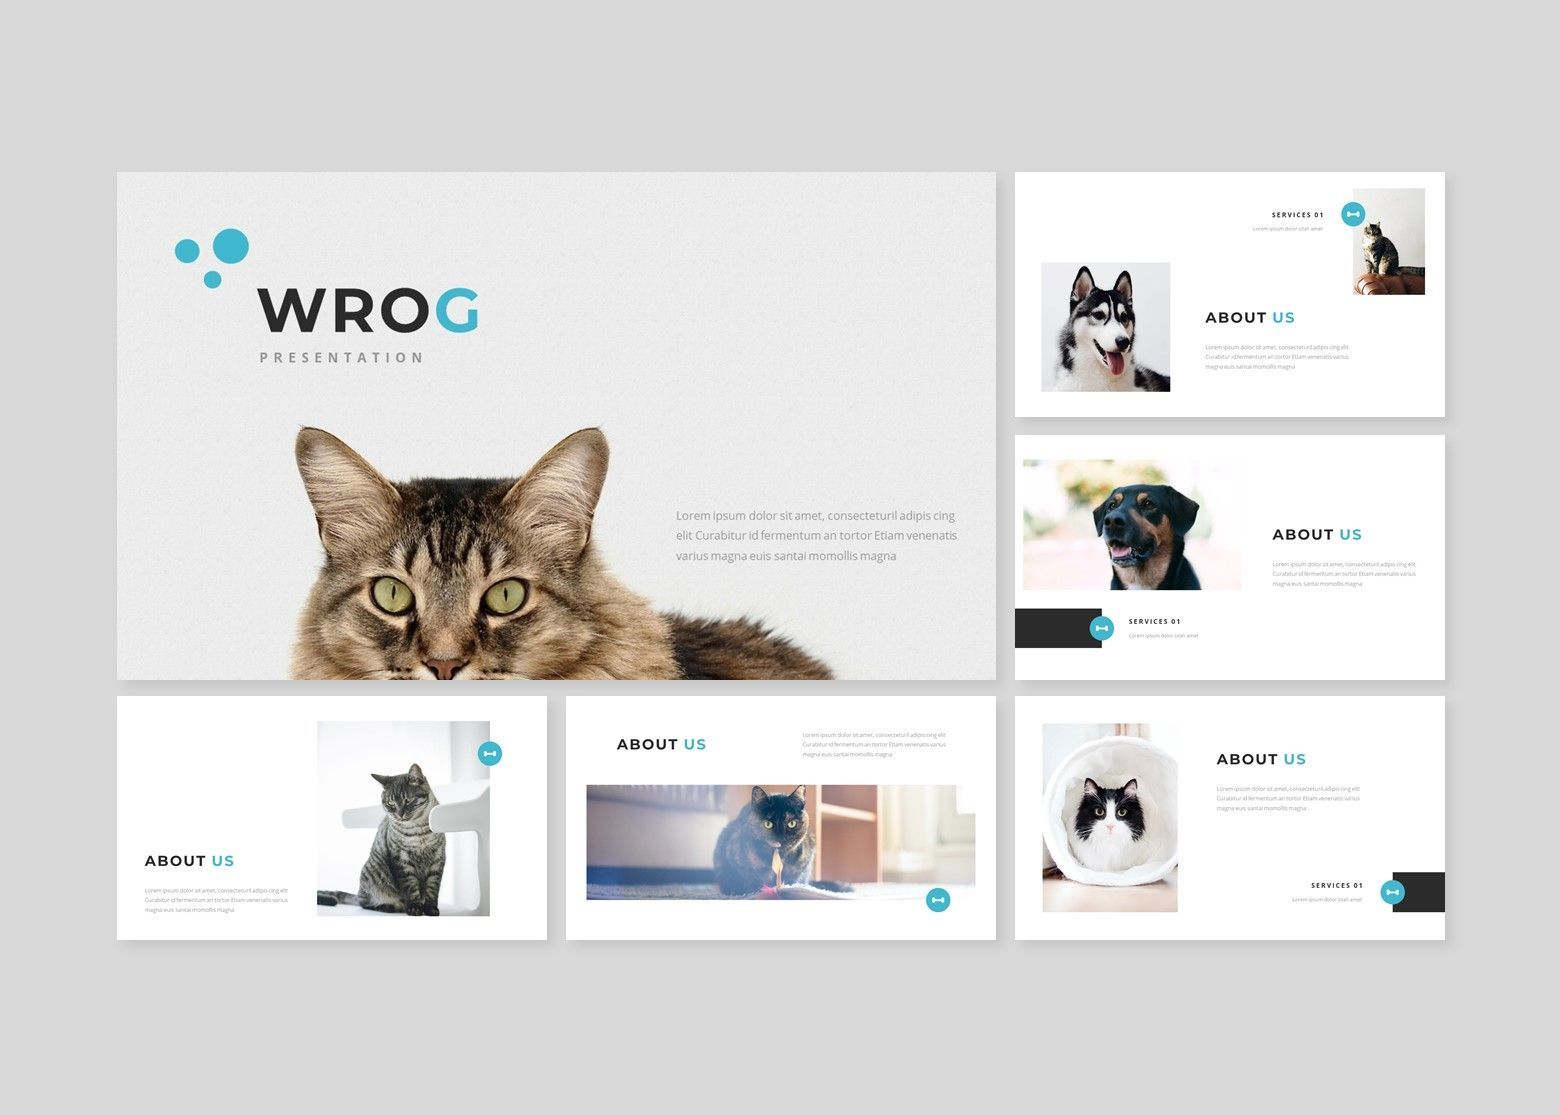 Wrog A Pet Service Google Slides, Slide 2, 08110, Business Models — PoweredTemplate.com